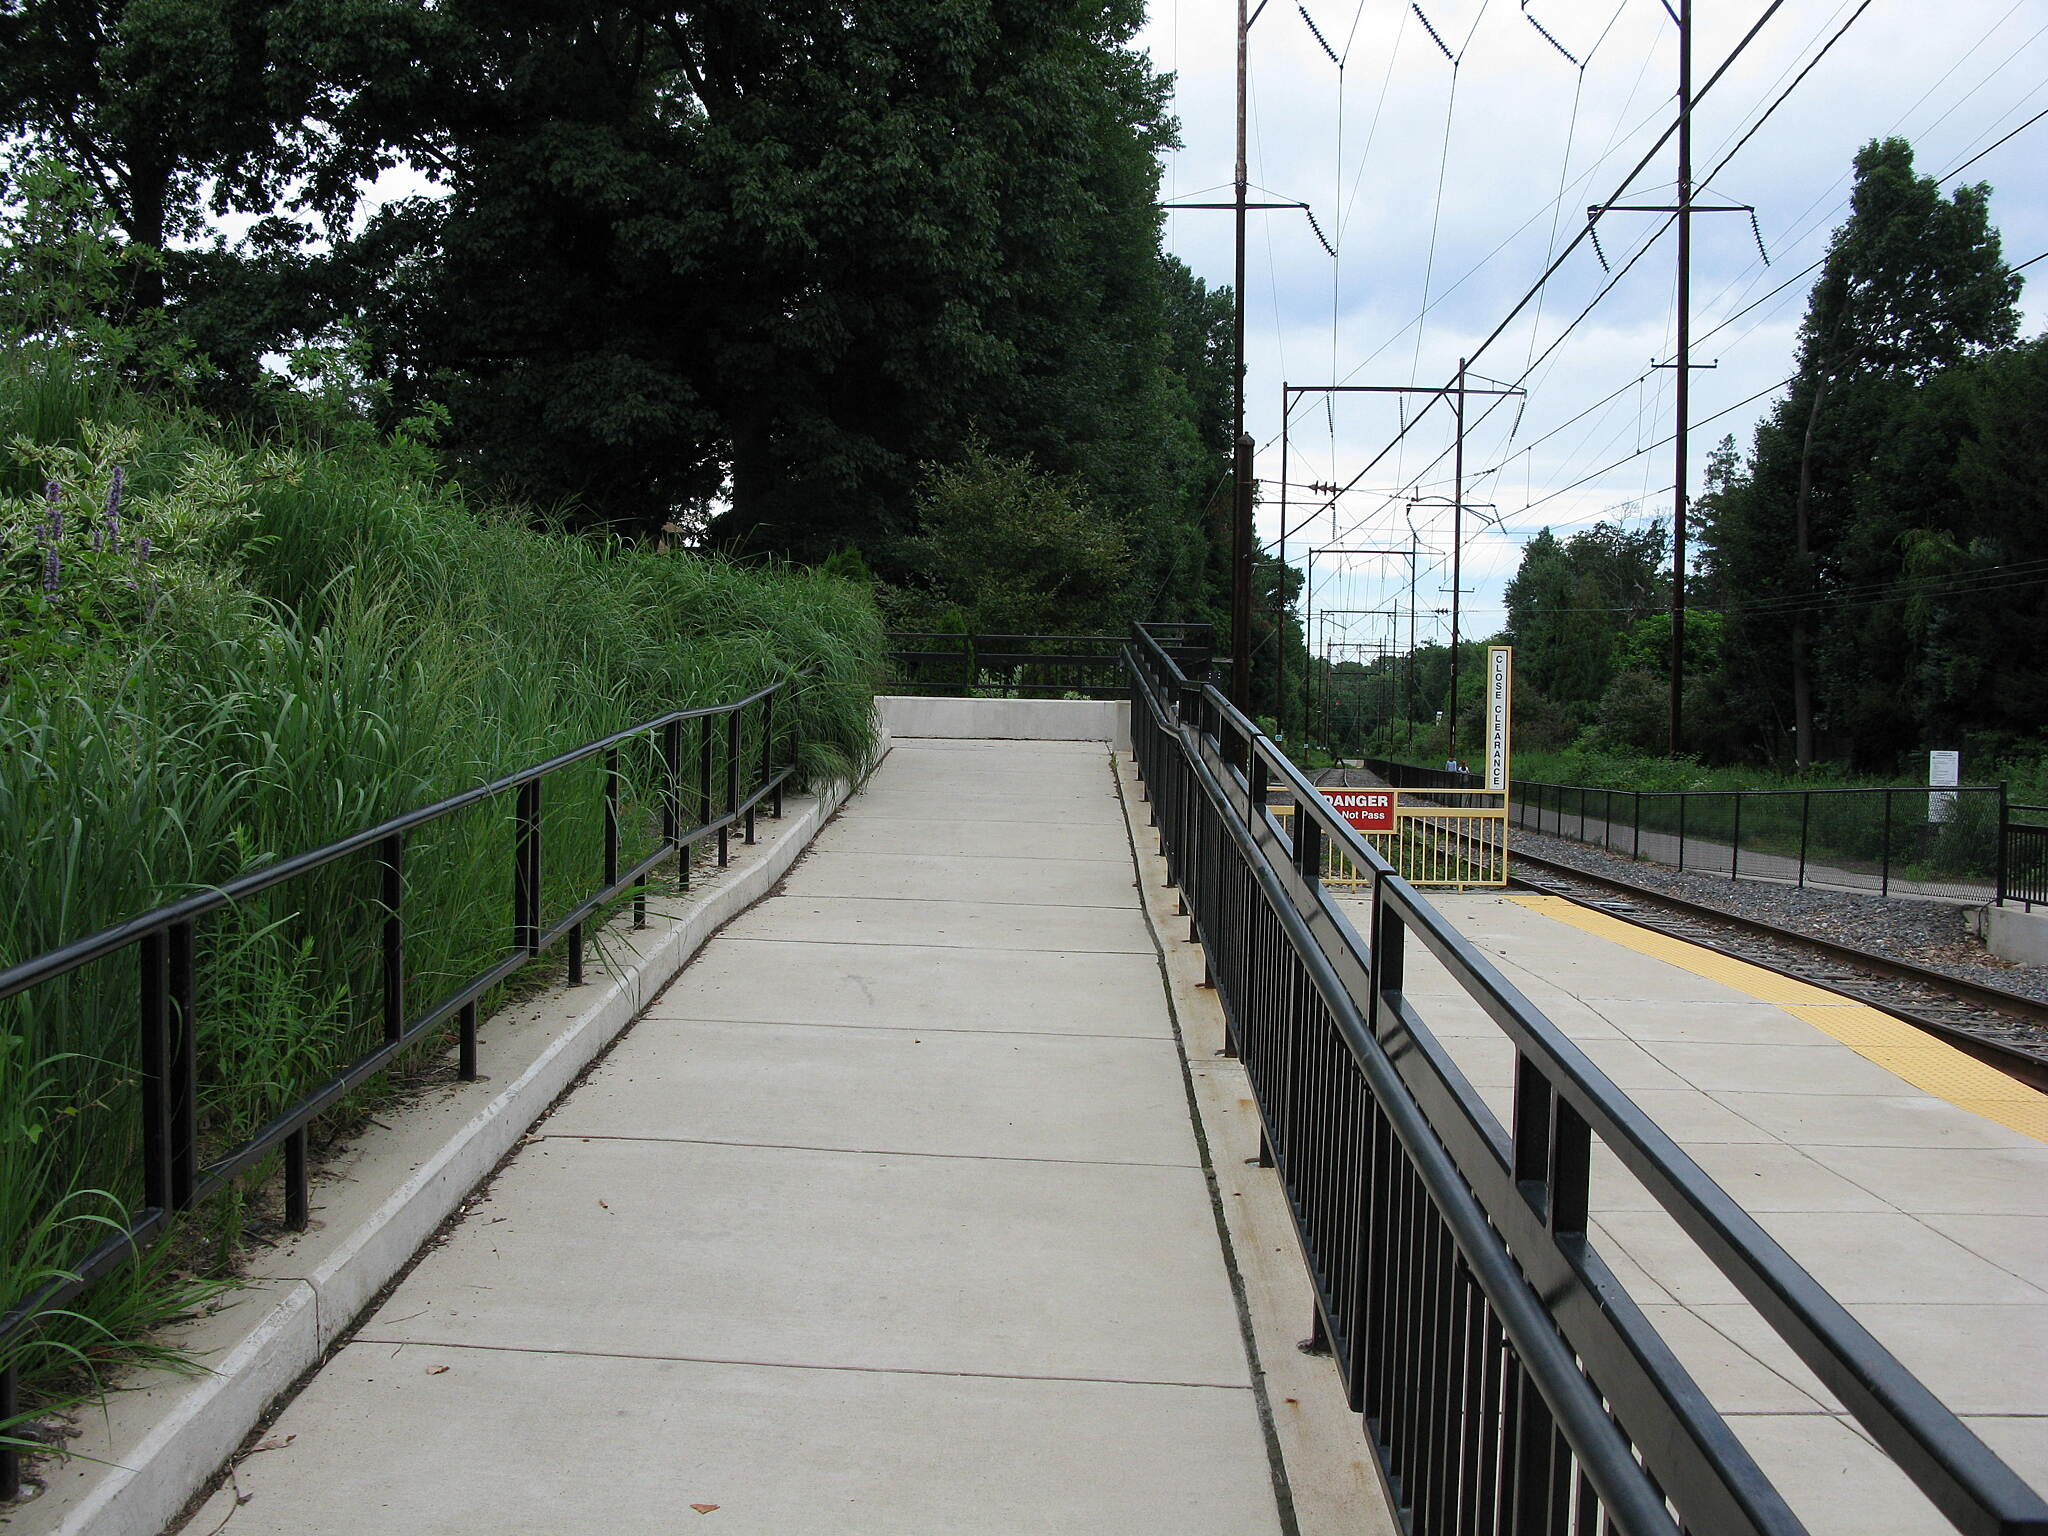 Cynwyd Heritage Trail Cynwyd Heritage Trail Switchback ramp connecting Cynwyd Station with the SEPTA line and trail.